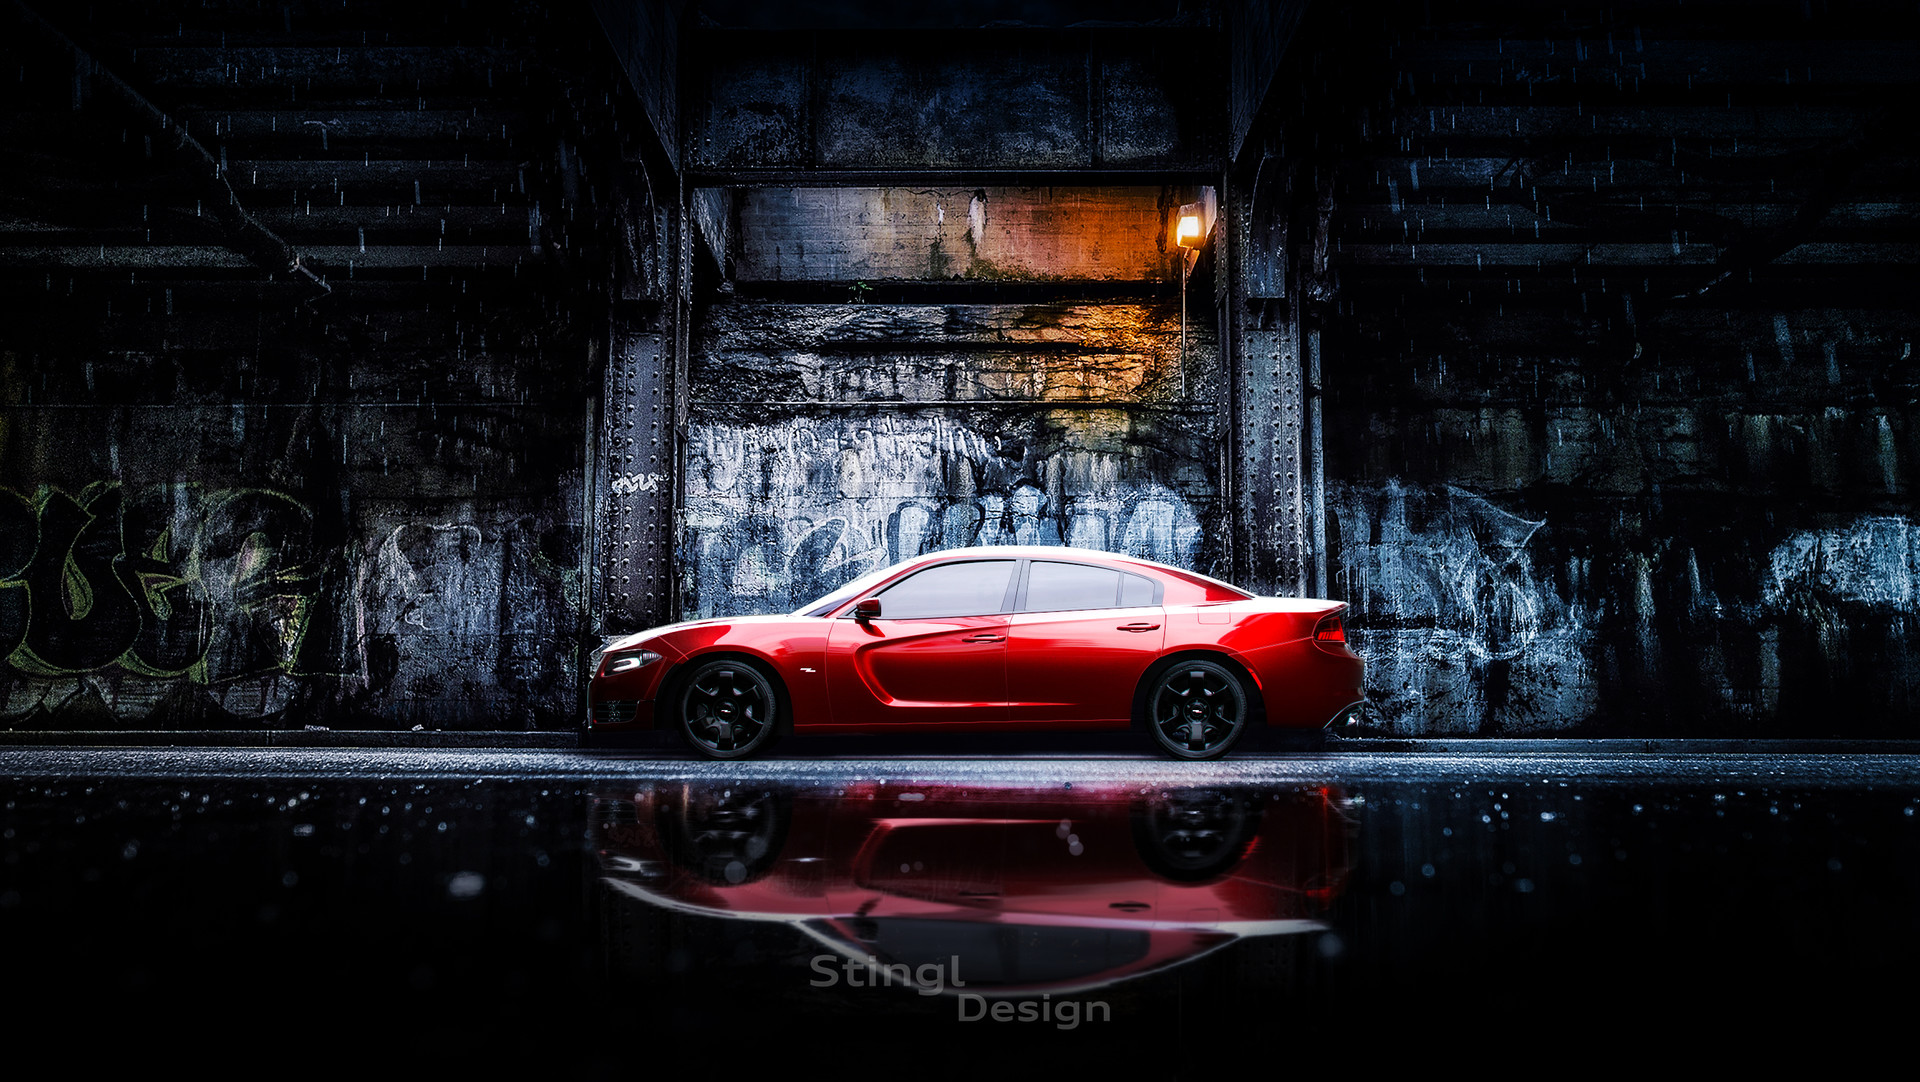 David stingl stingldesign opel rogue red 2